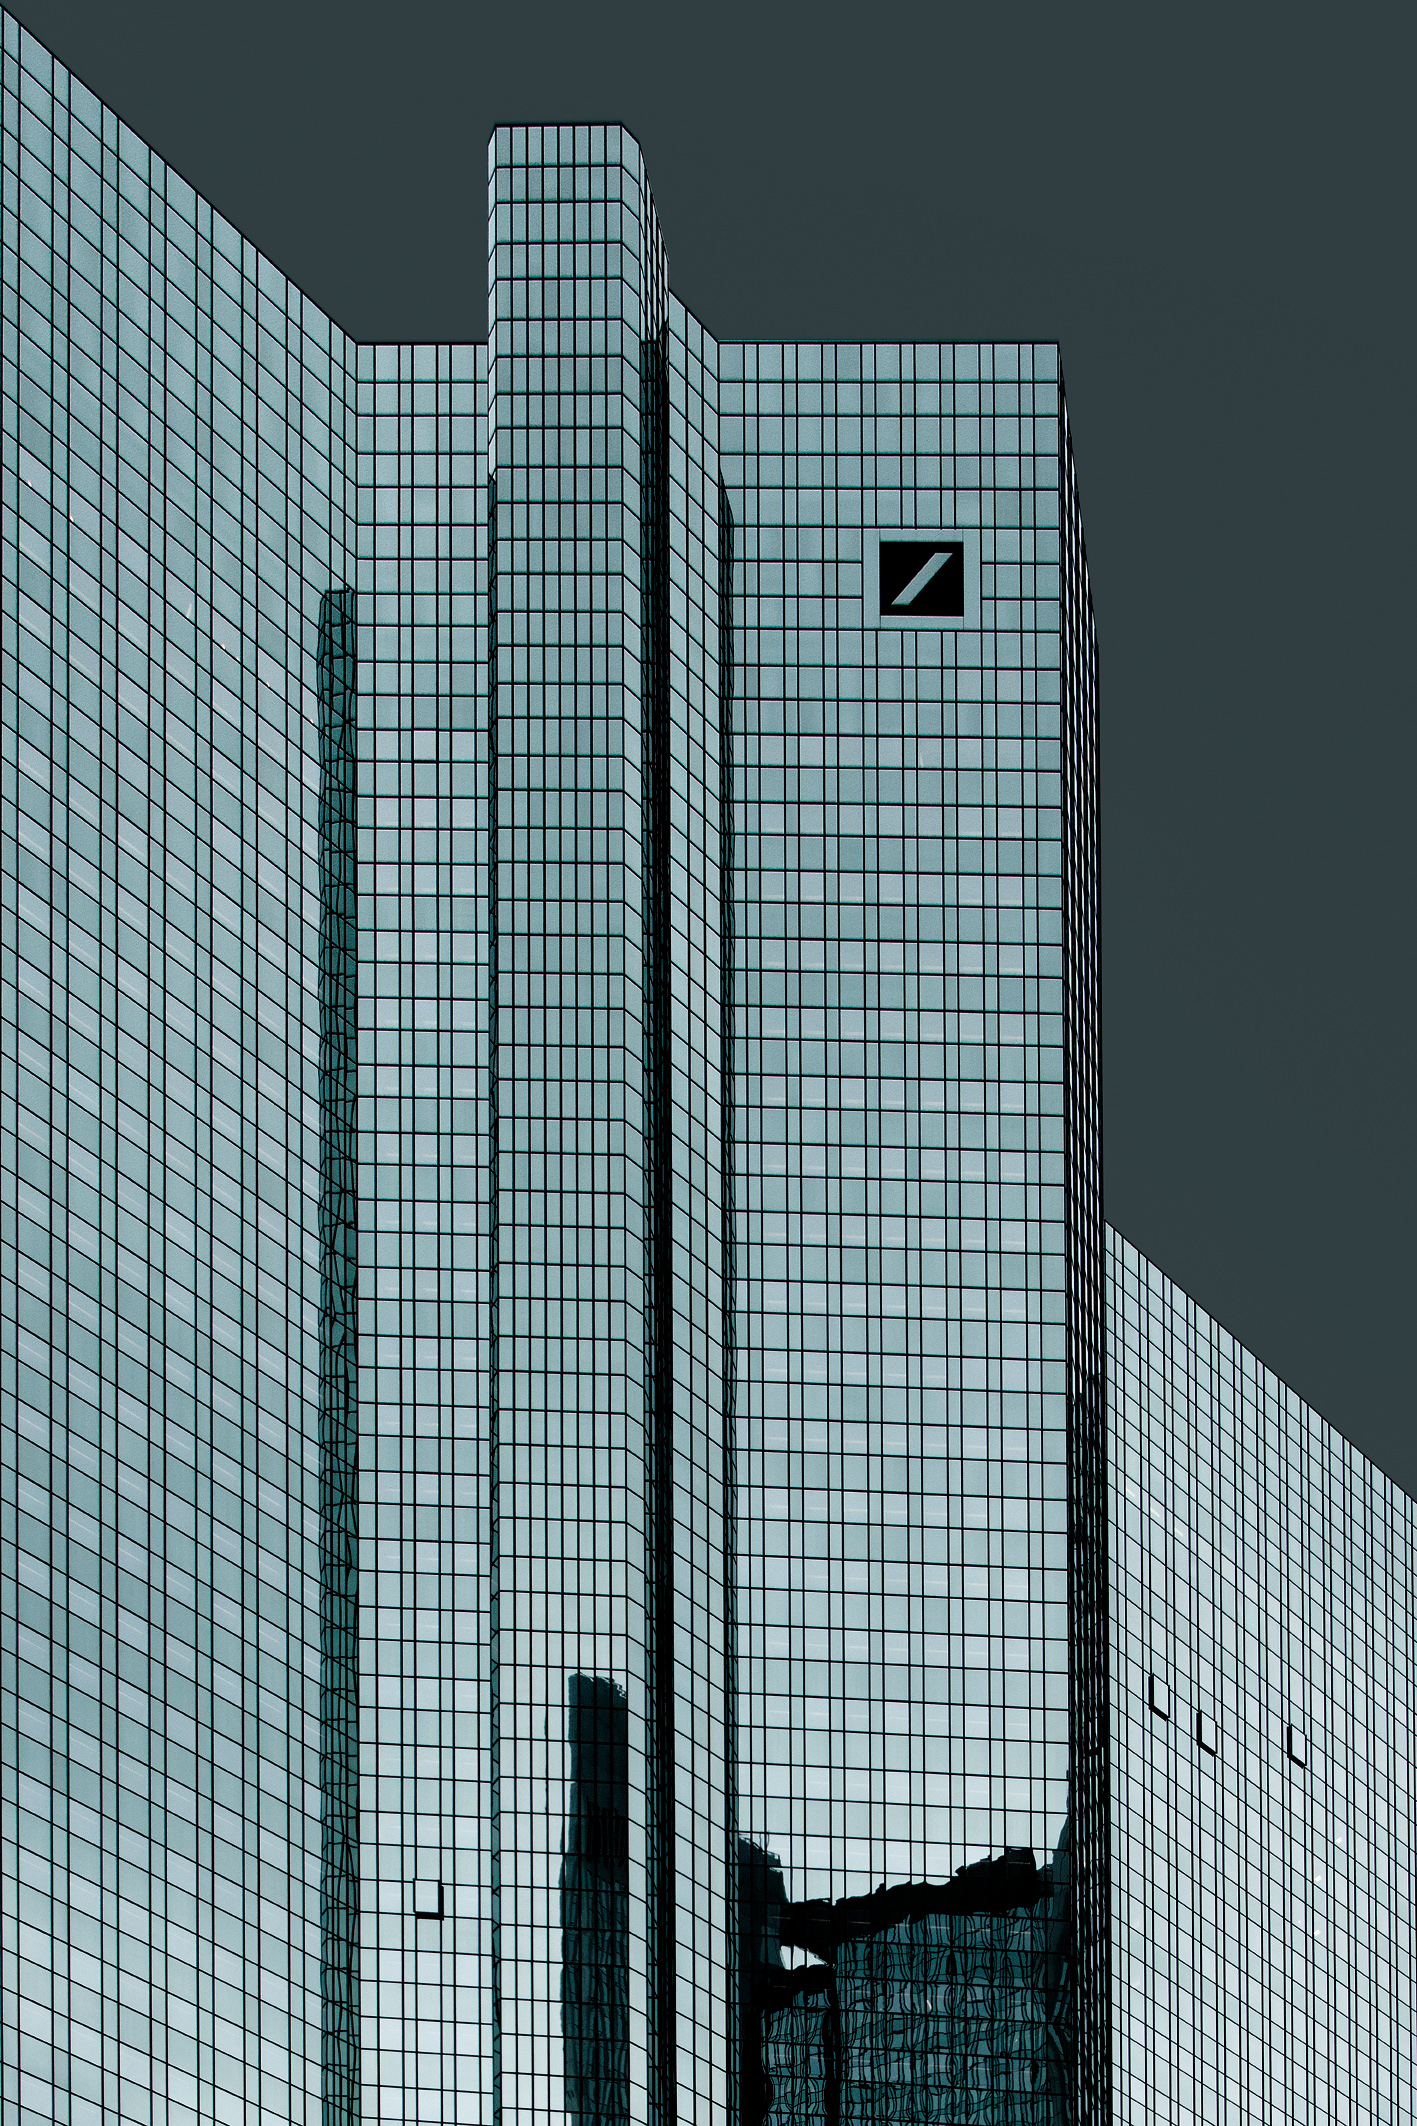 Architecture Photography:Financial Tombstones